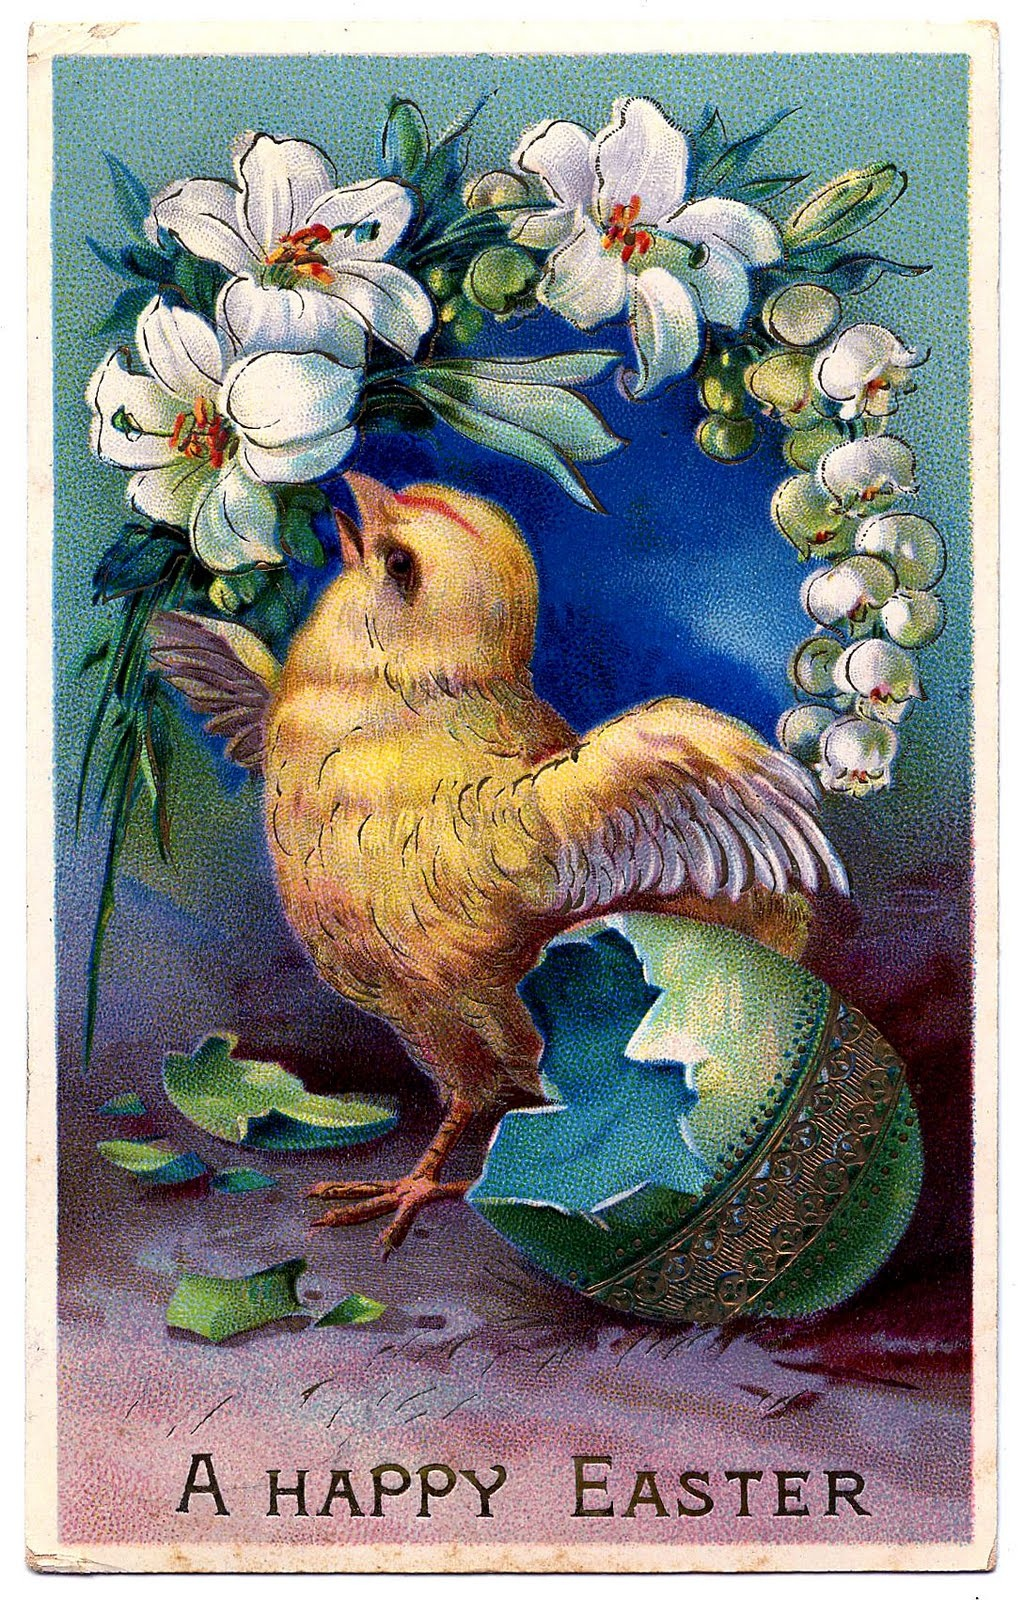 Free Vintage Chick Cliparts, Download Free Clip Art, Free Clip Art - Free Printable Vintage Easter Images